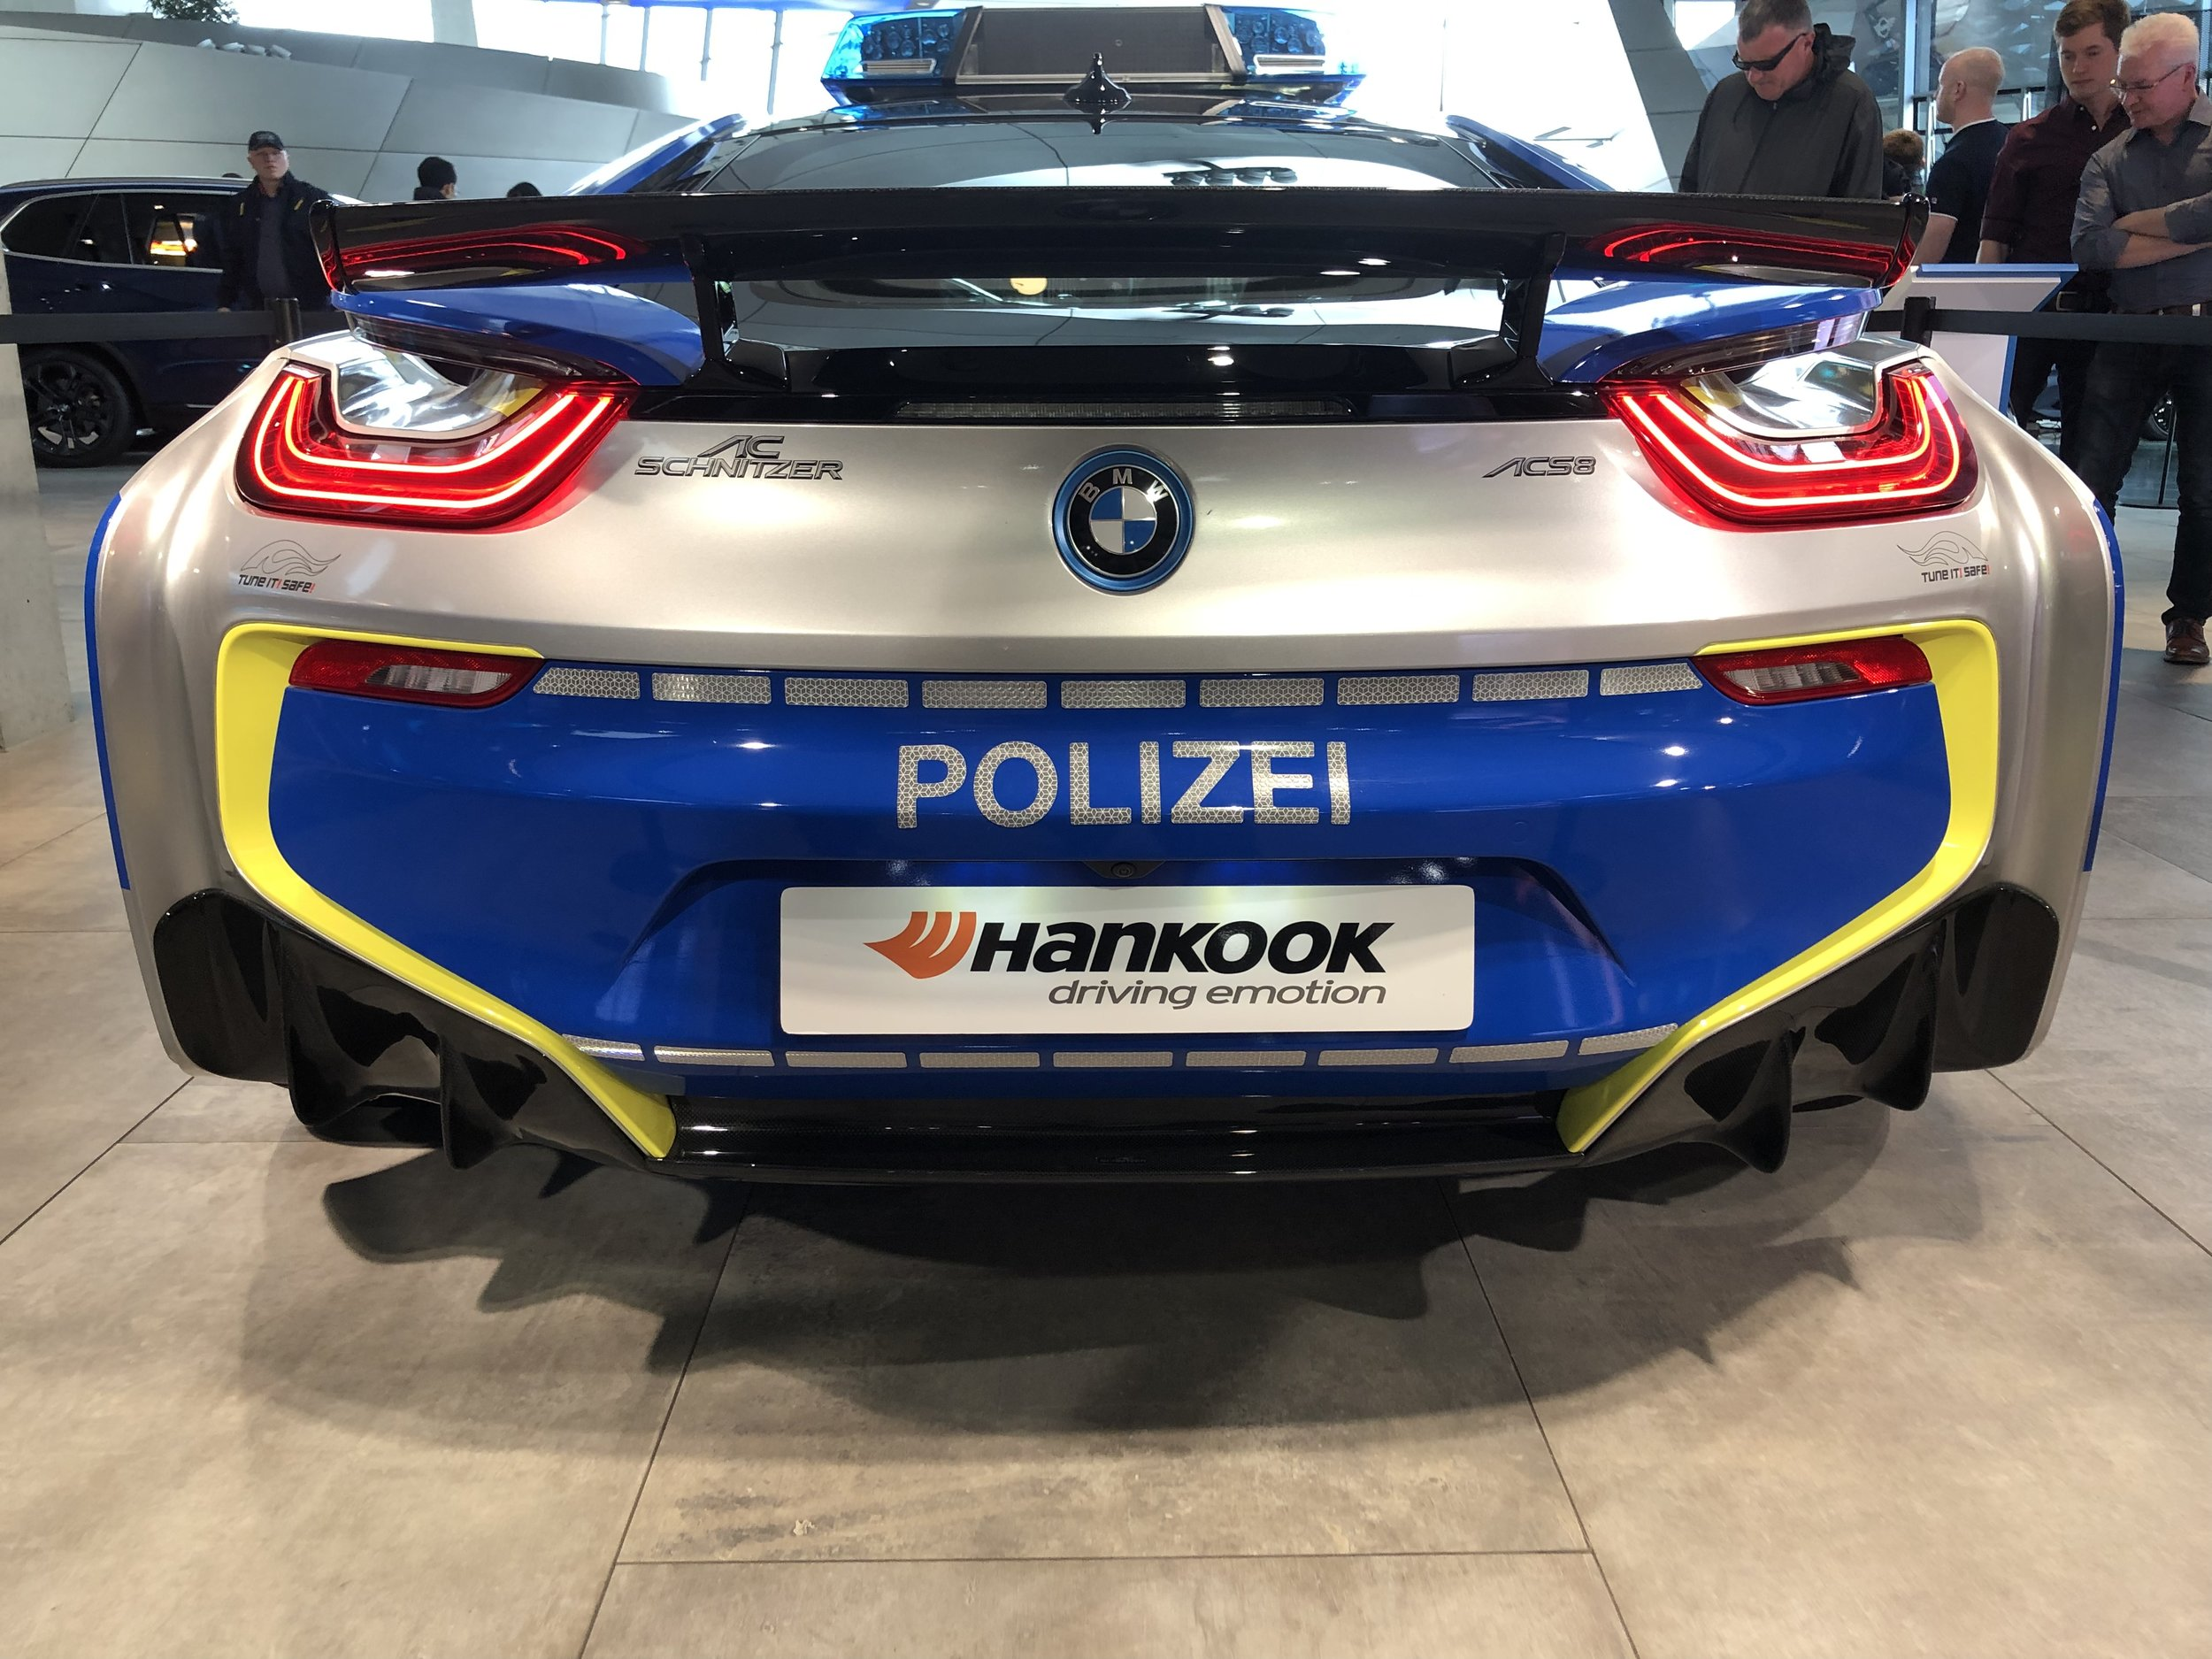 The German Police i8